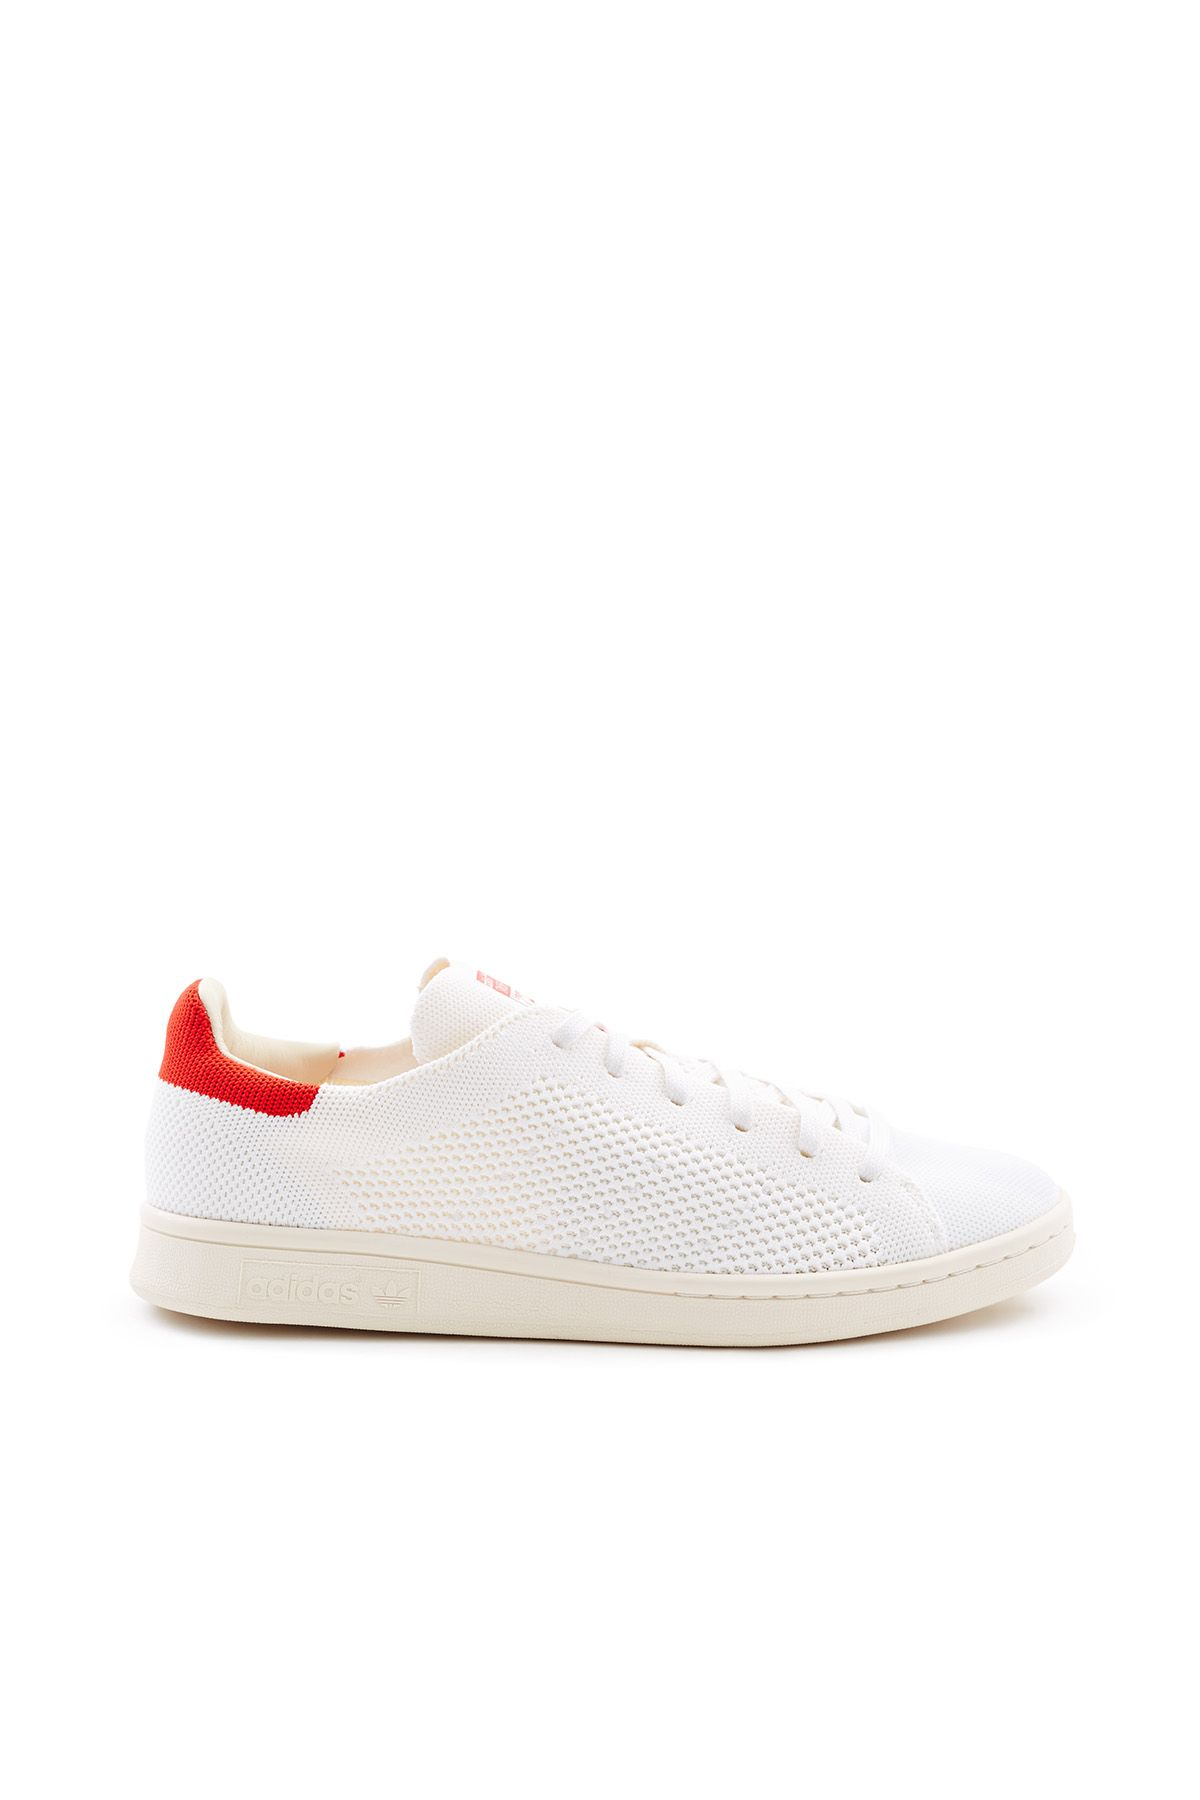 la meilleure attitude a8f64 177cf Perforated @adidas Stan Smith in white at @openingceremony ...